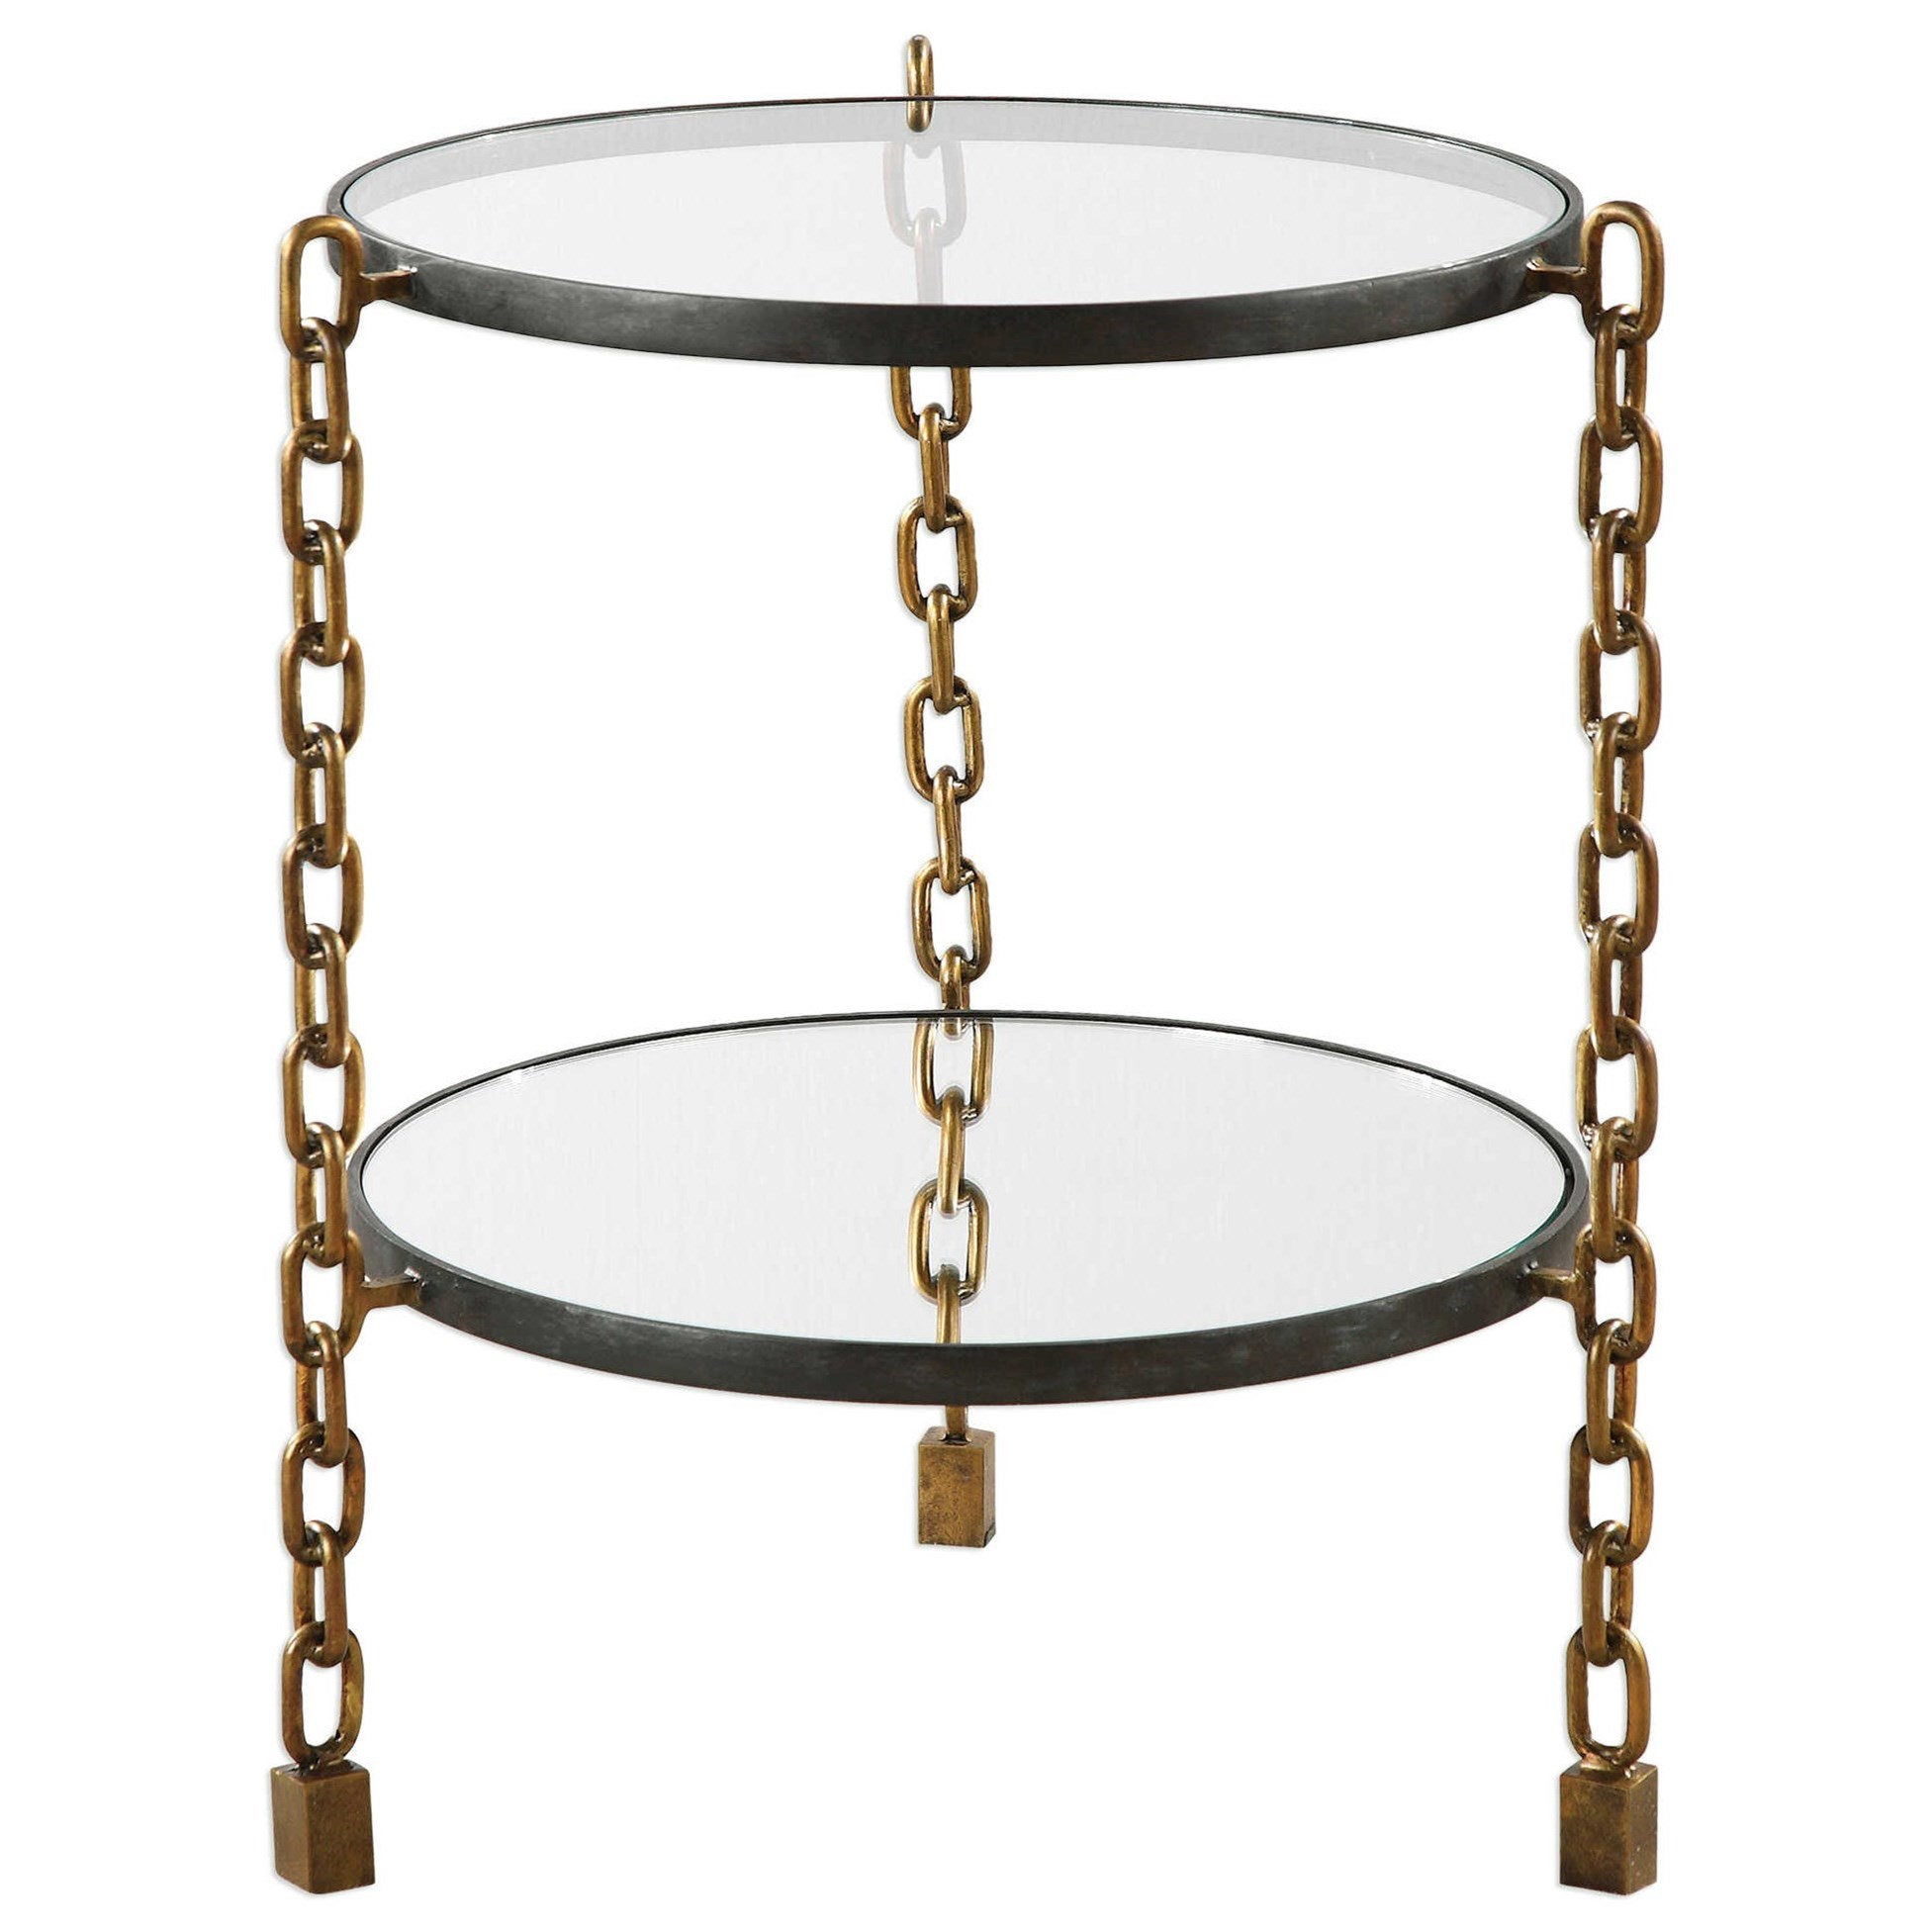 Uttermost Accent Furniture Alonna Chain Accent Table - Item Number: 24721